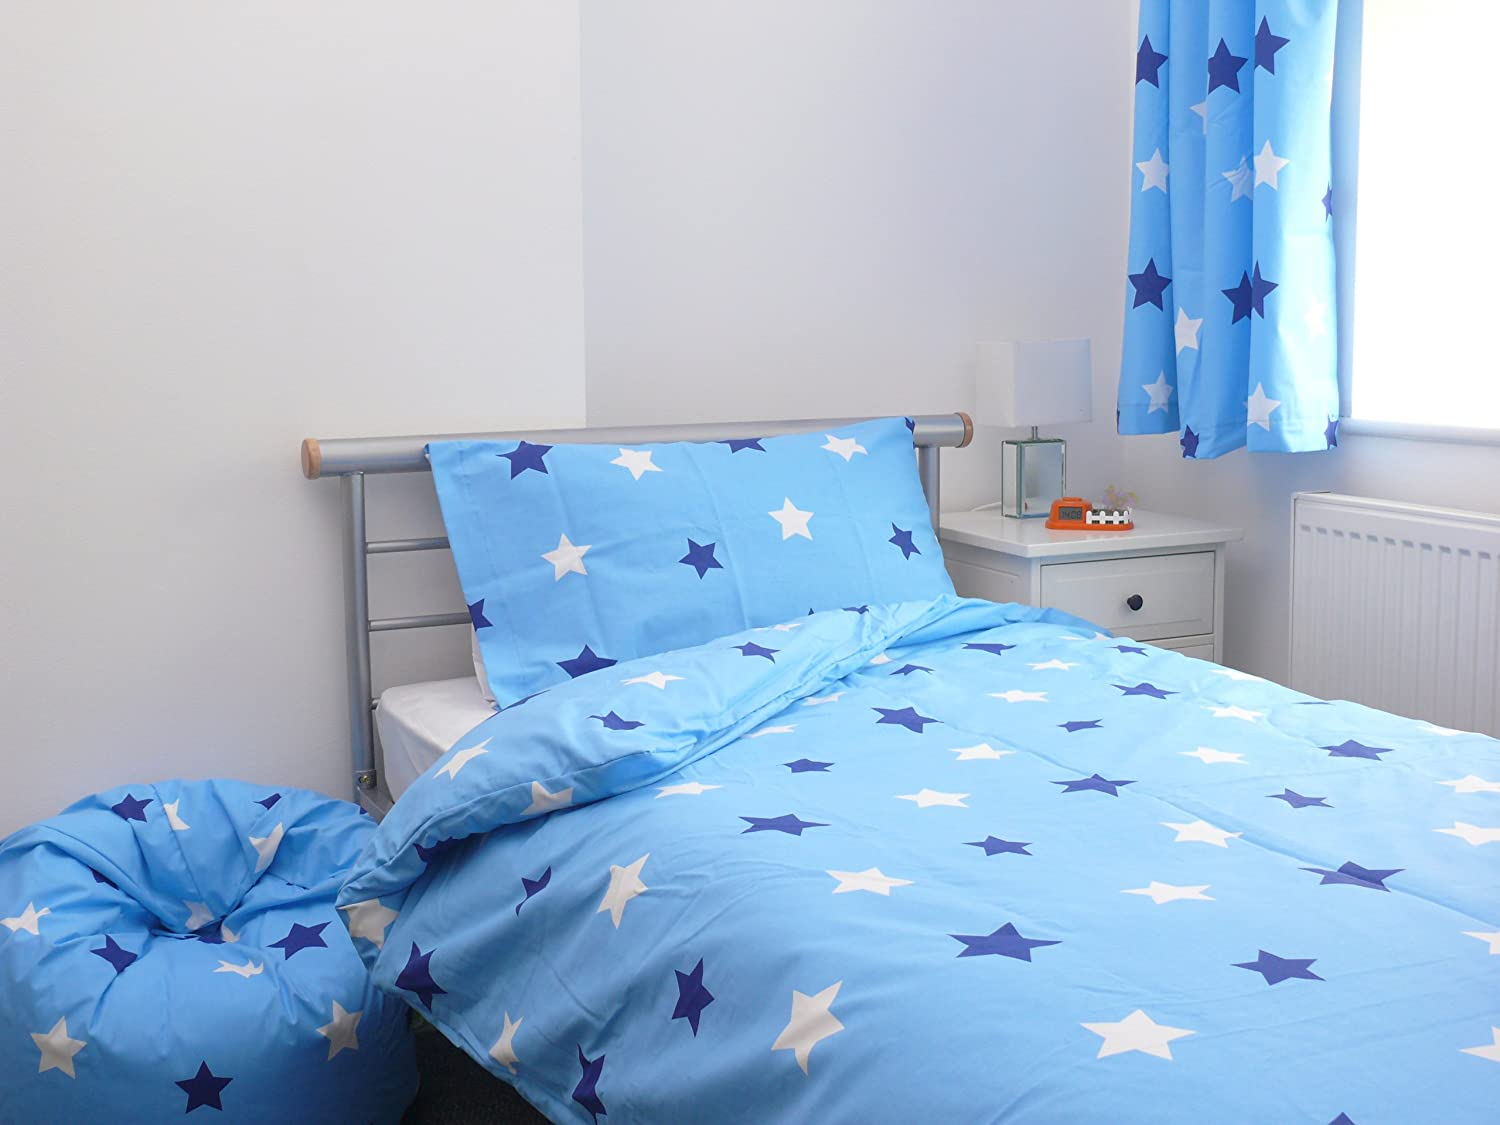 pdp at main lewis buylittle home rsp set star little duvet and grey fbl pillowcase stars john online cover single